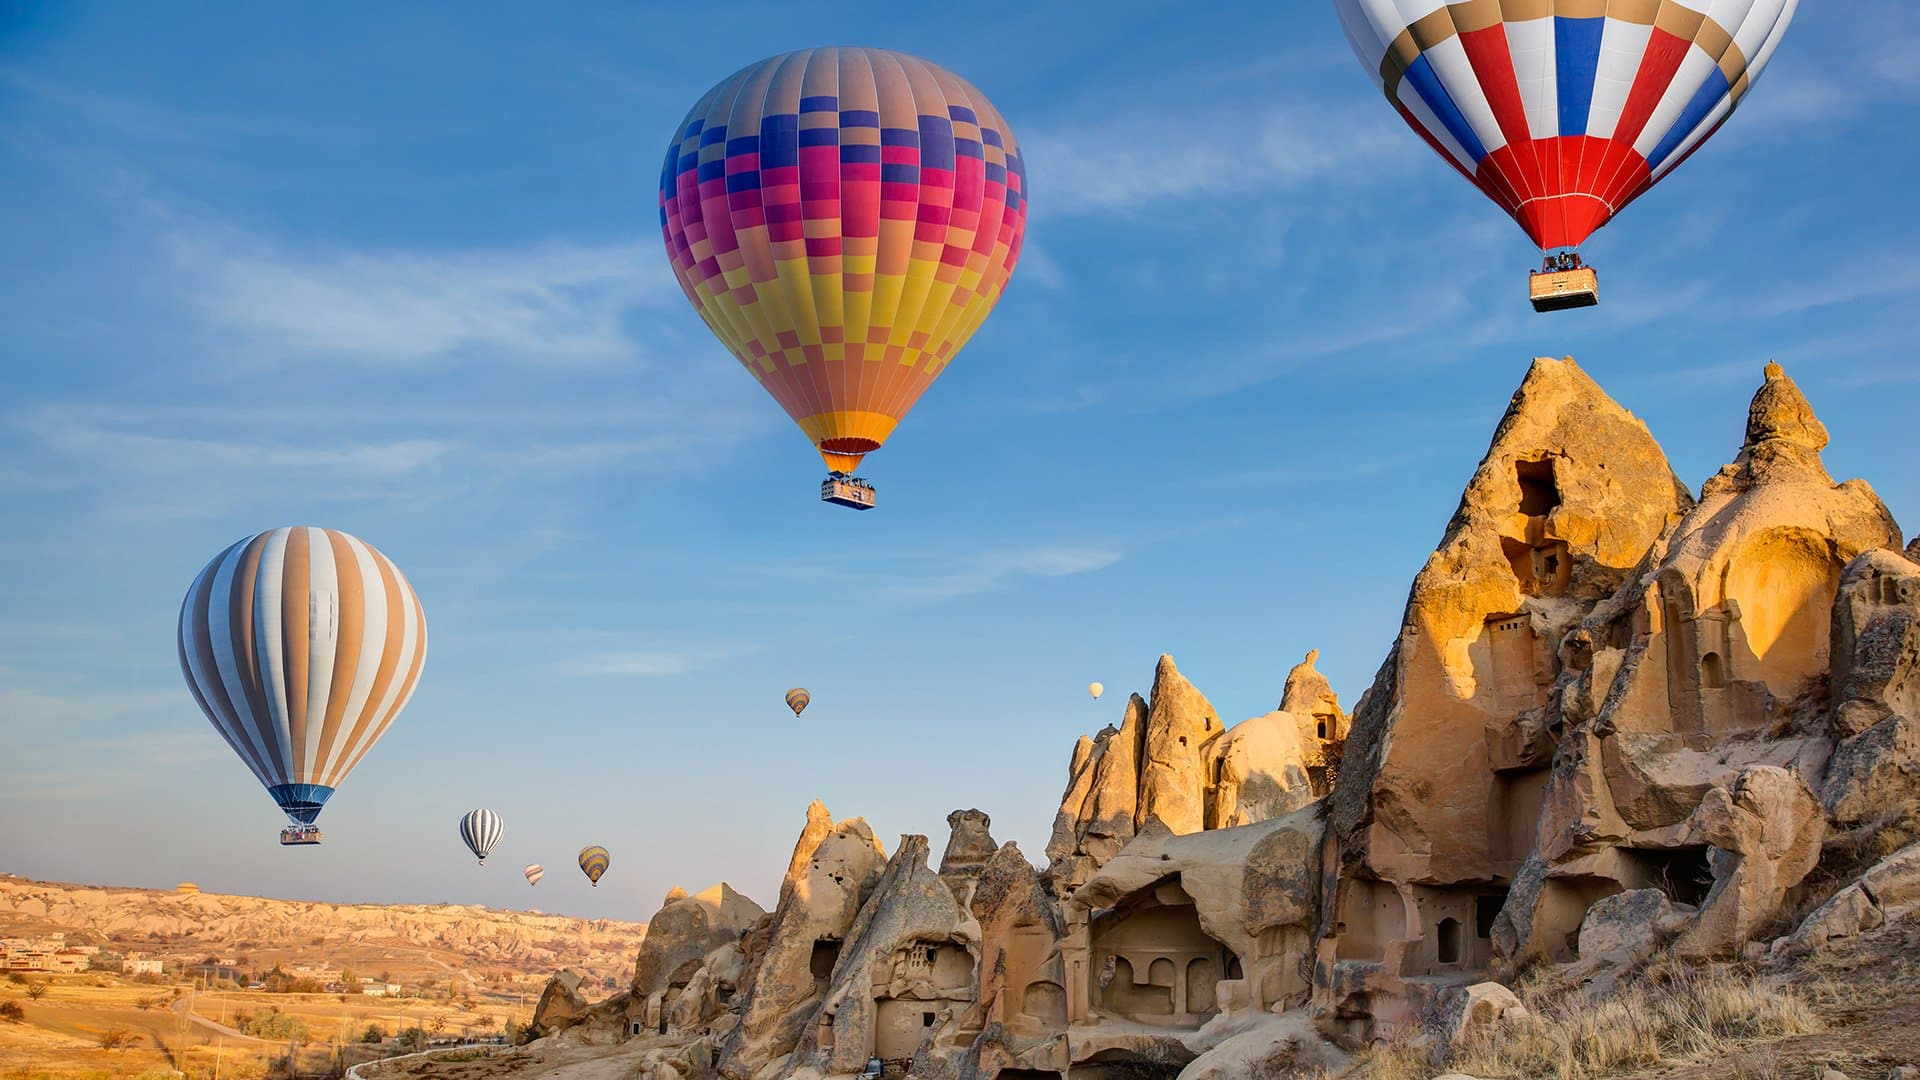 Cappadocia Tour from/to Istanbul - Turkey 5